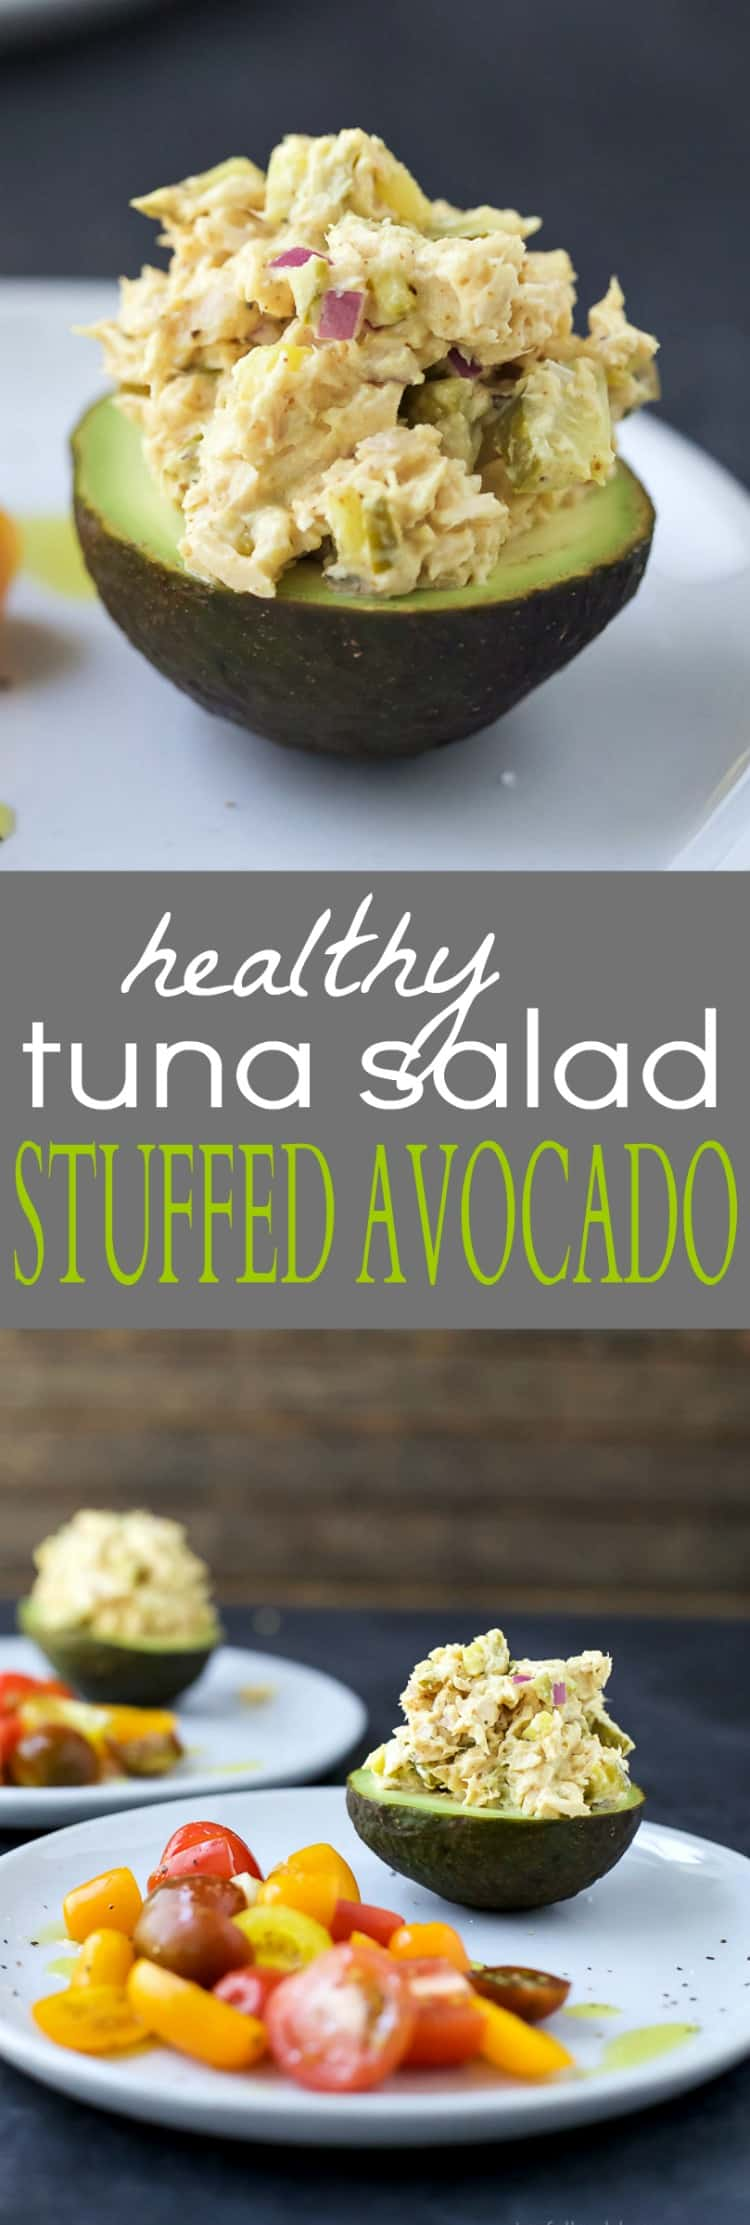 Healthy Tuna Salad Stuffed Avocado - an easy gluten free recipe perfect for lunch.